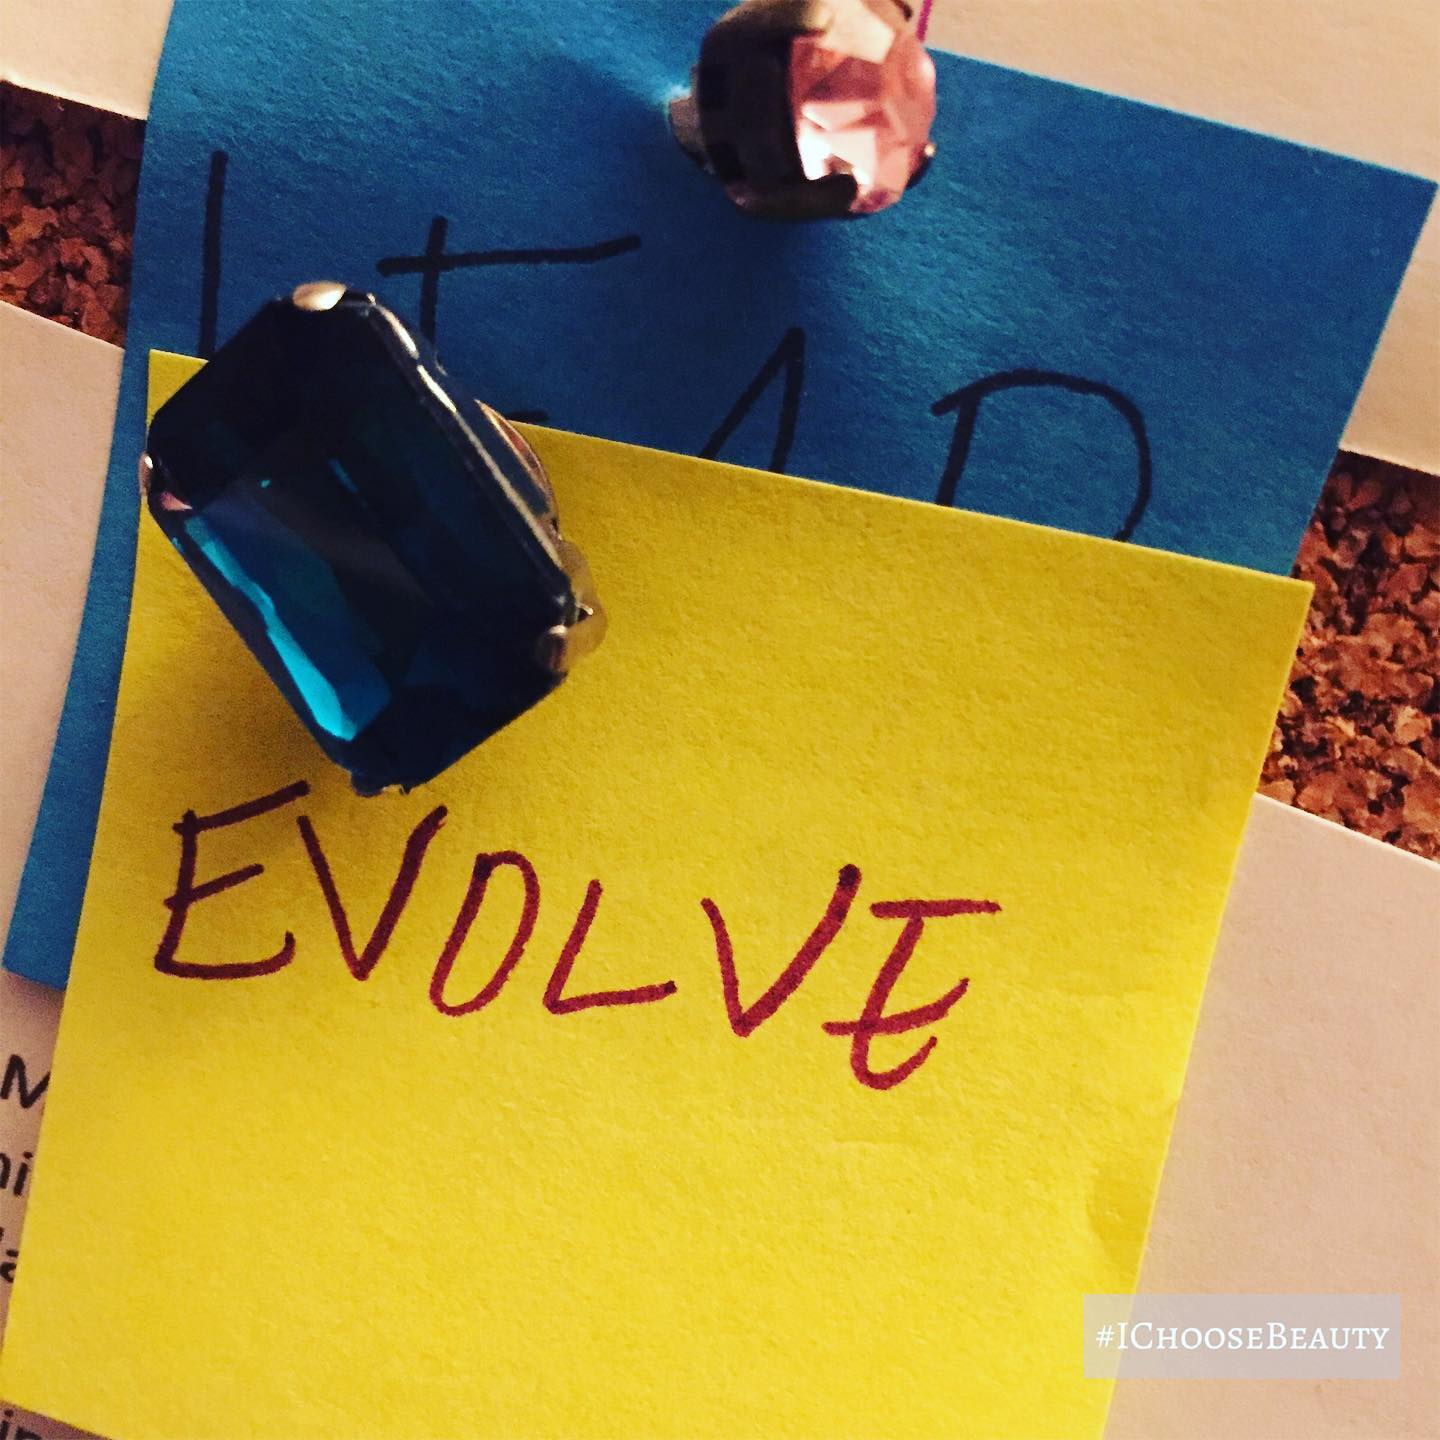 "How fitting is it that ""evolve"" was what I chose months ago as my word for the year? #ichoosebeauty Day 2428"